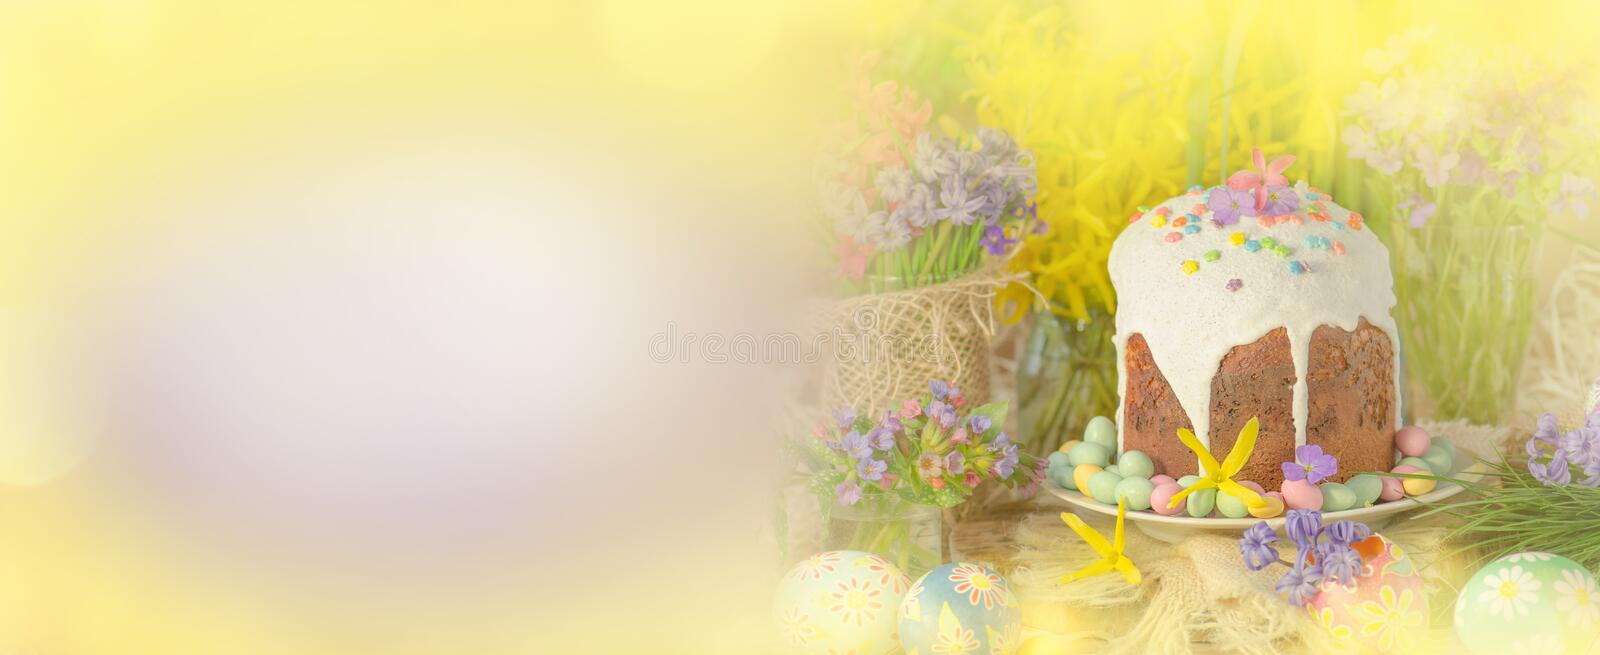 Spring flower banner background with Easter eggs. Easter holiday creative background. royalty free stock images